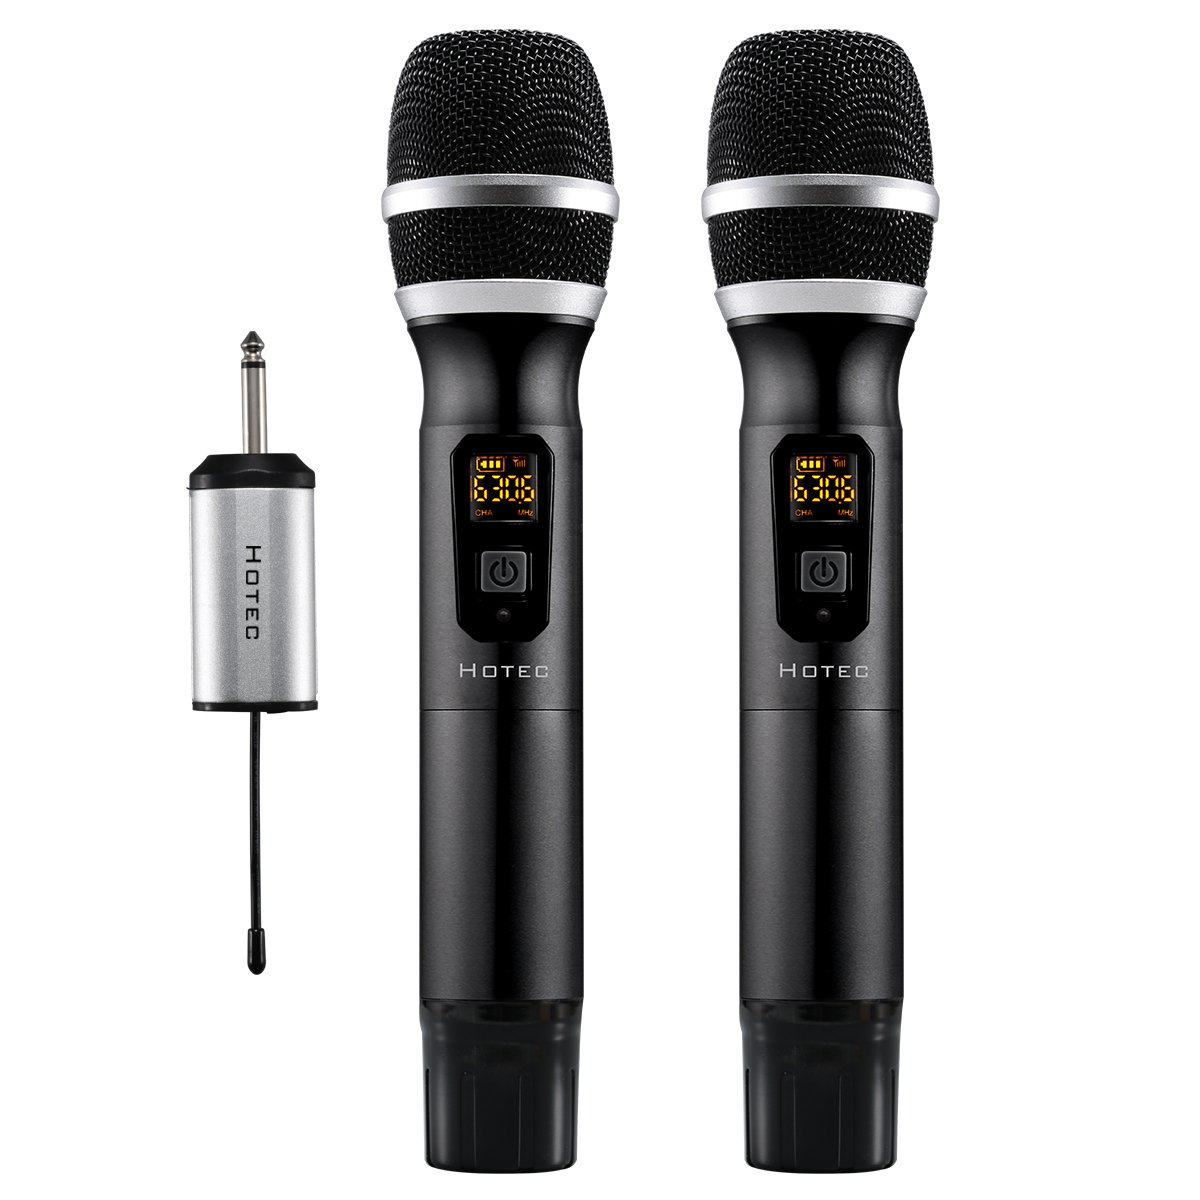 Hotec 25 Channel UHF Wireless Microphone Dual Microphone with Mini Portable Receiver 1/4'' Output, For Church/Home / Karaoke/Business Meeting (Dual mic)